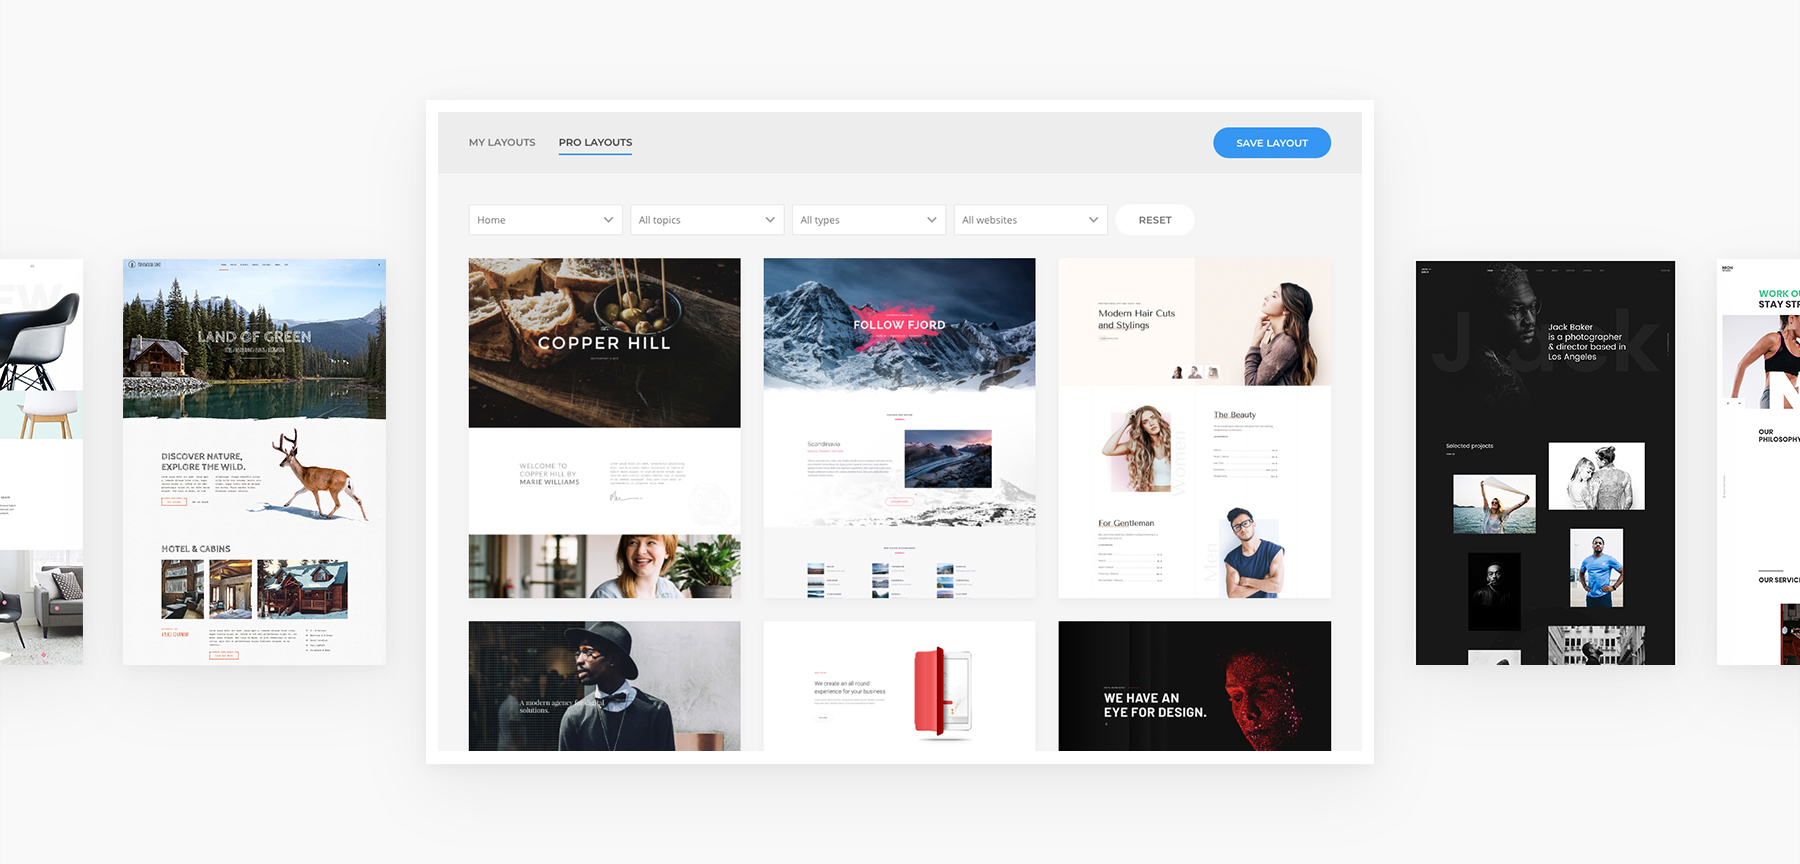 yootheme-pro-layout-library Introducing the YOOtheme Pro Page Builder design tips